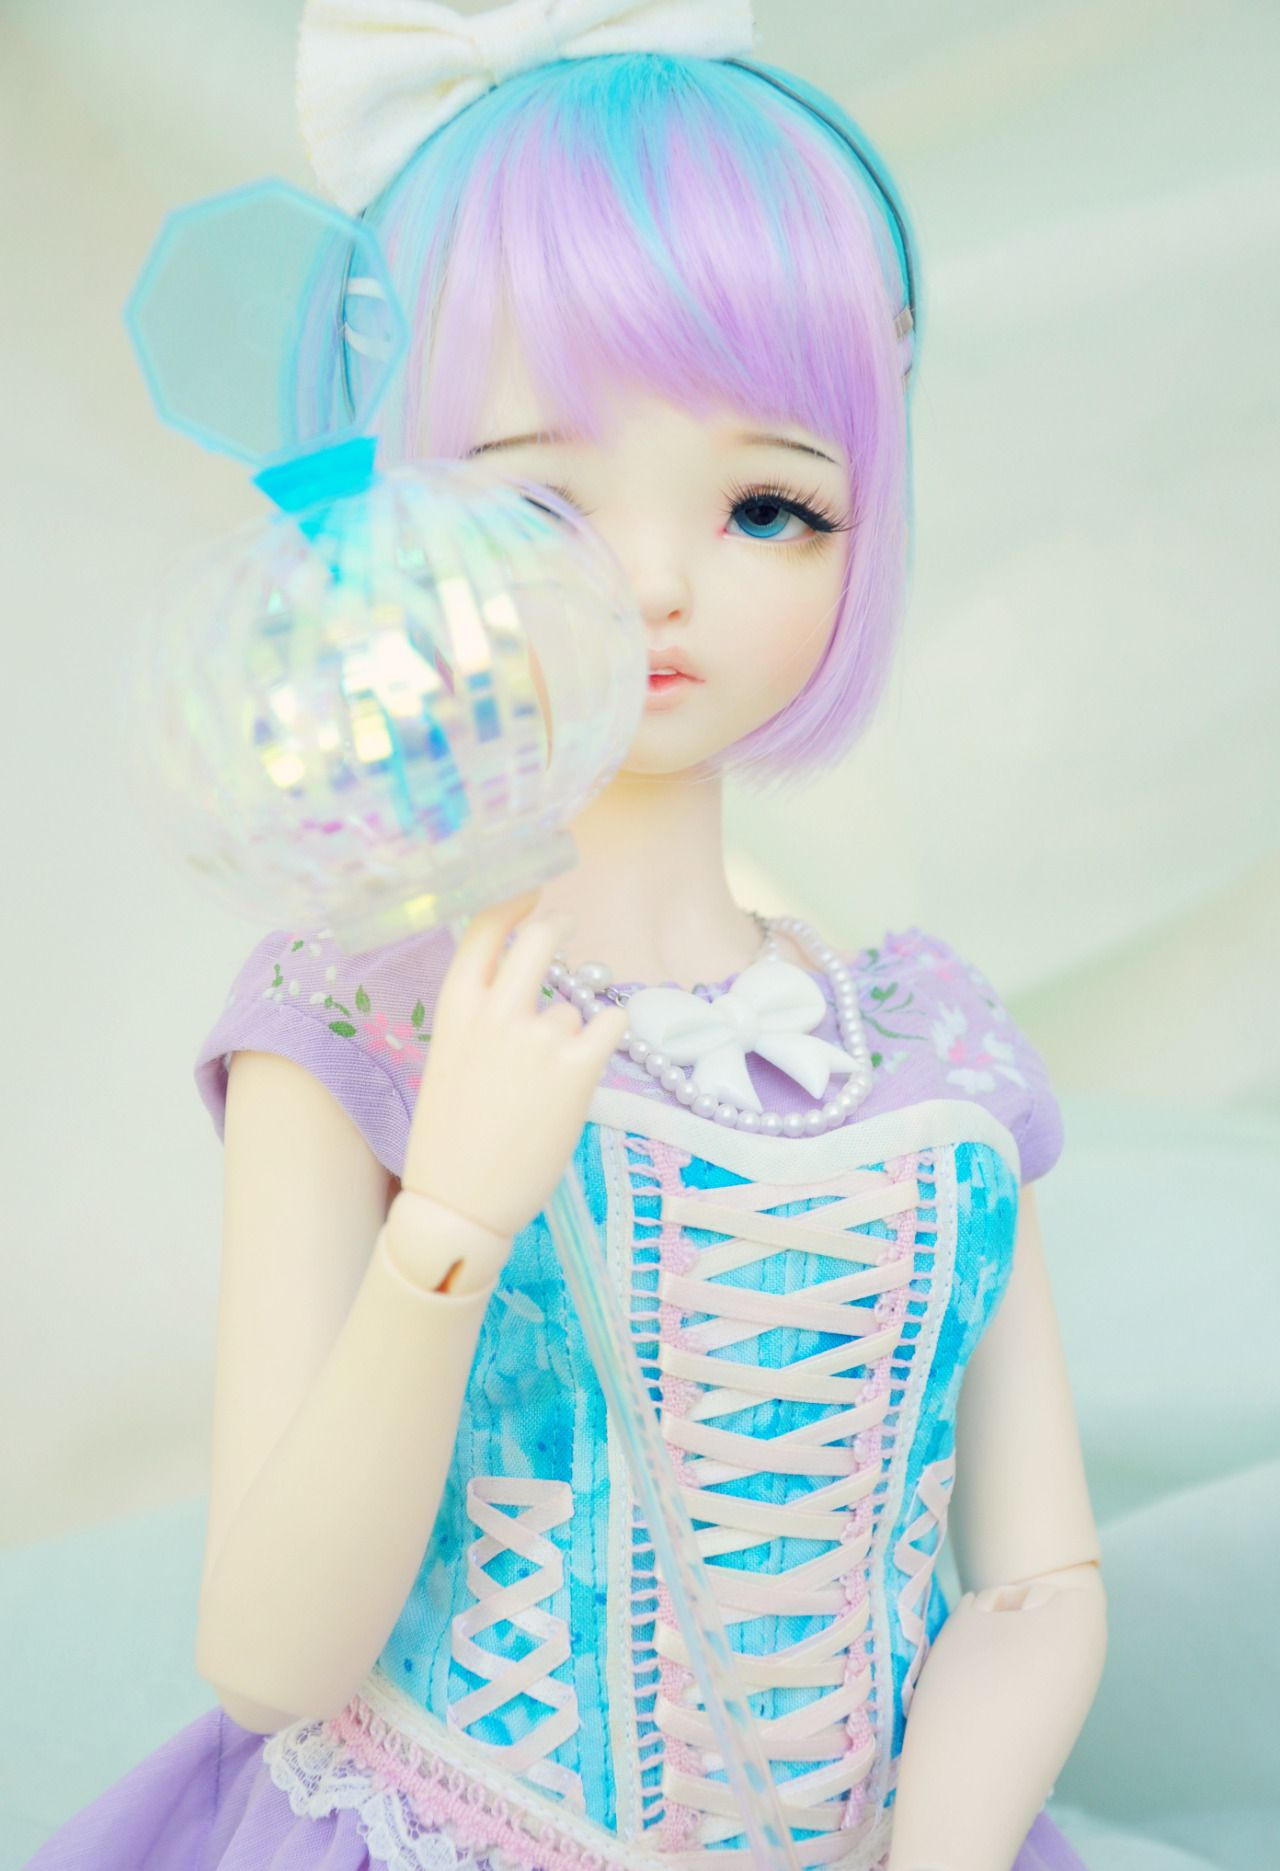 Culur Faceups — ♥♥ My Shy little blue and purple Princess♥♥